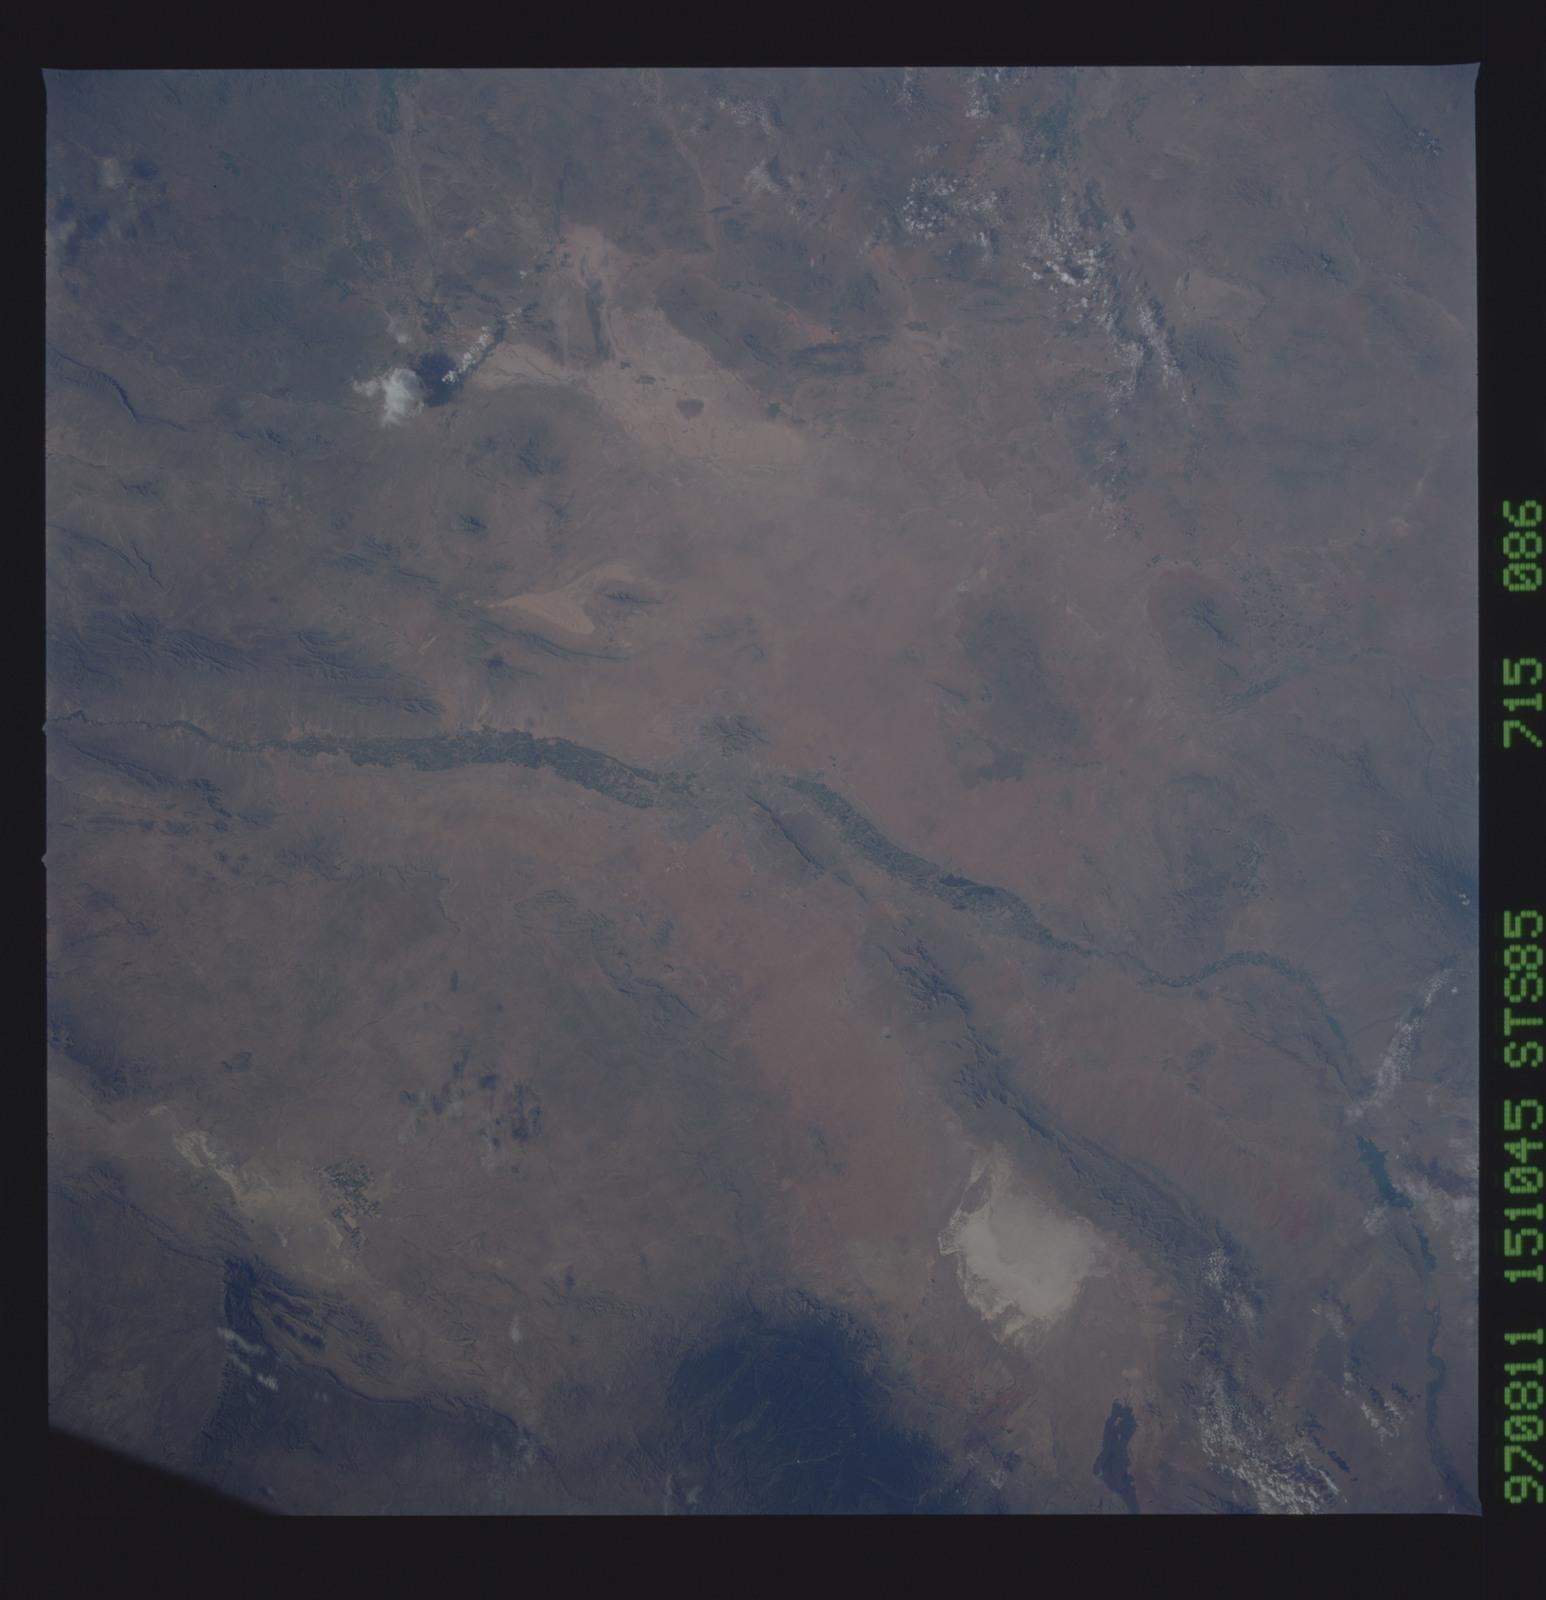 STS085-715-086 - STS-085 - Earth observations taken from orbiter Discovery during STS-85 mission